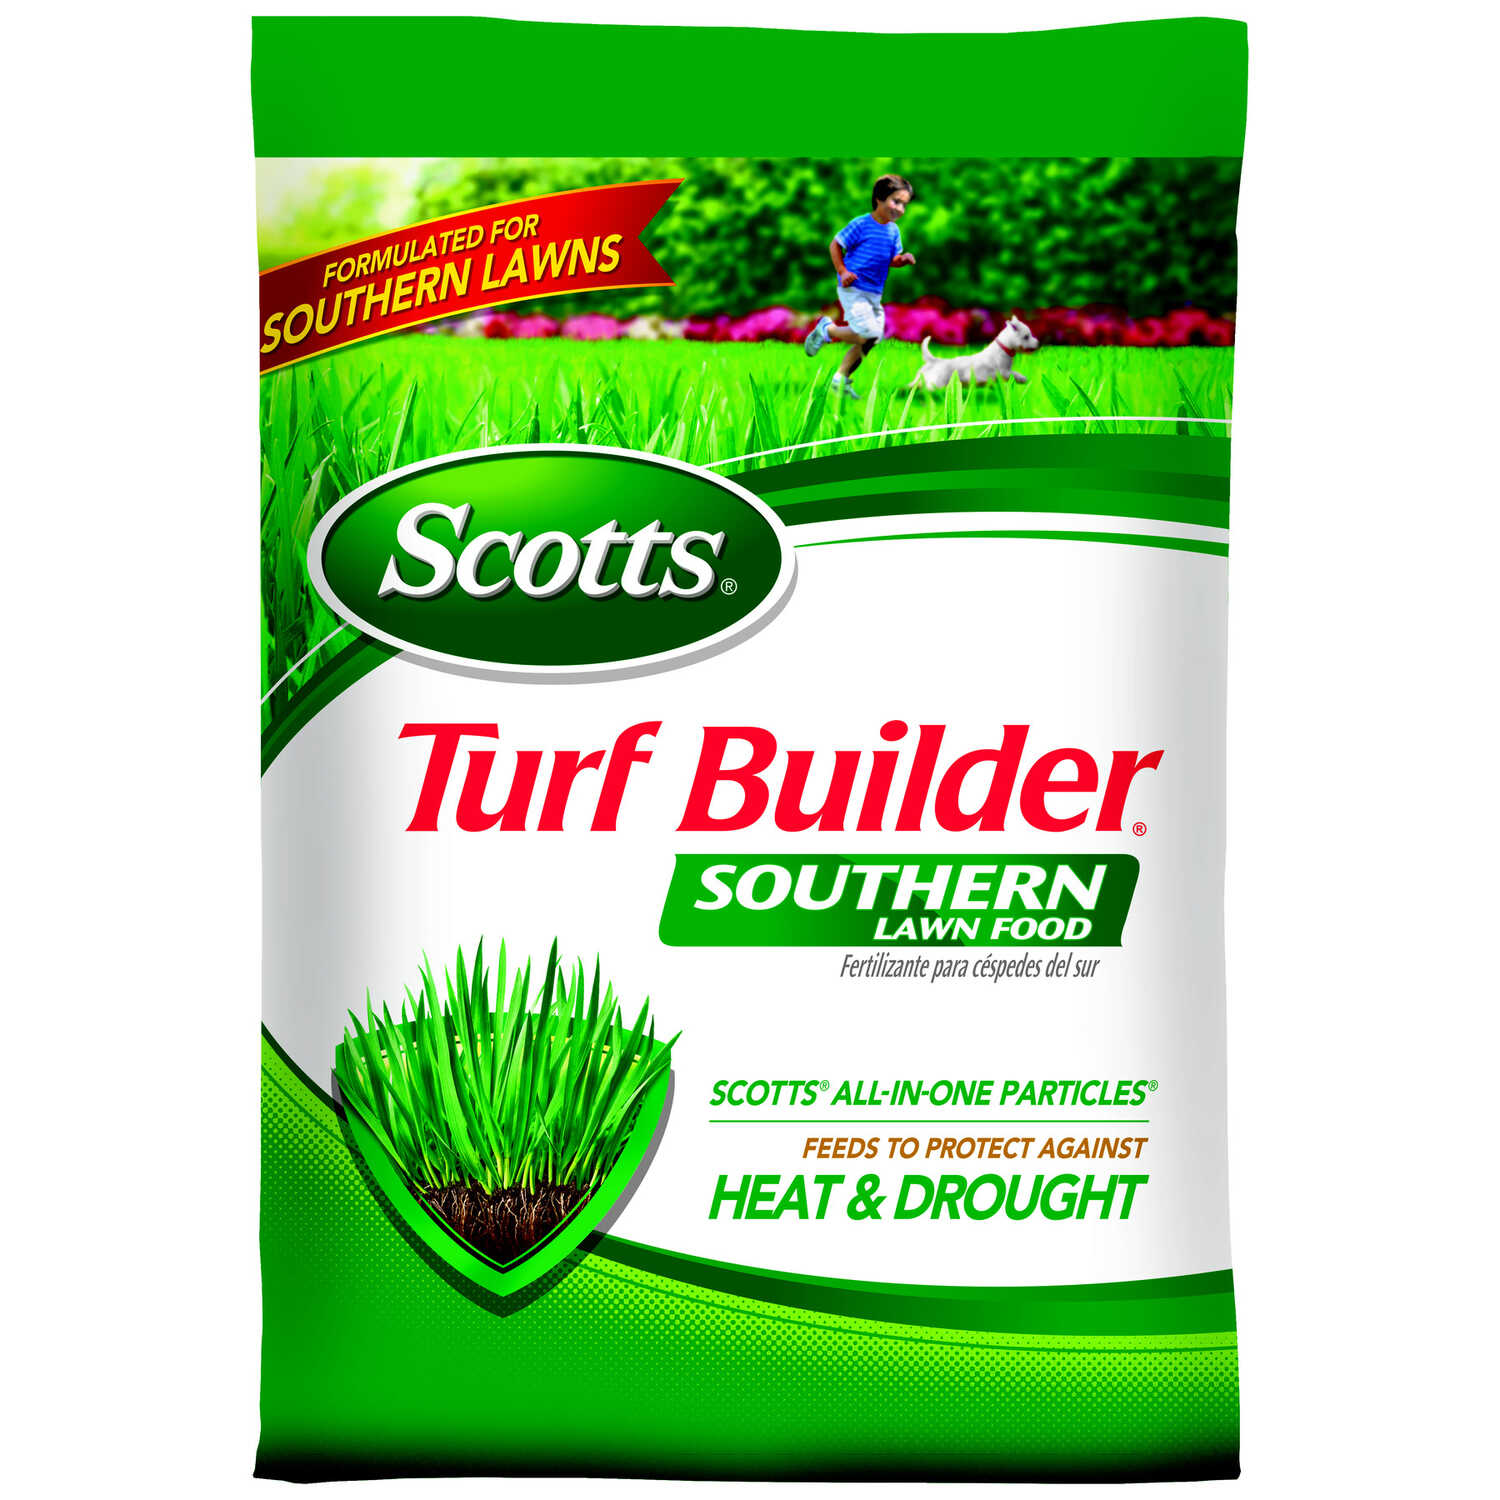 Scotts  Turf Builder  32-0-10  Lawn Food  For Southern 15 lb. 5000 sq. ft.